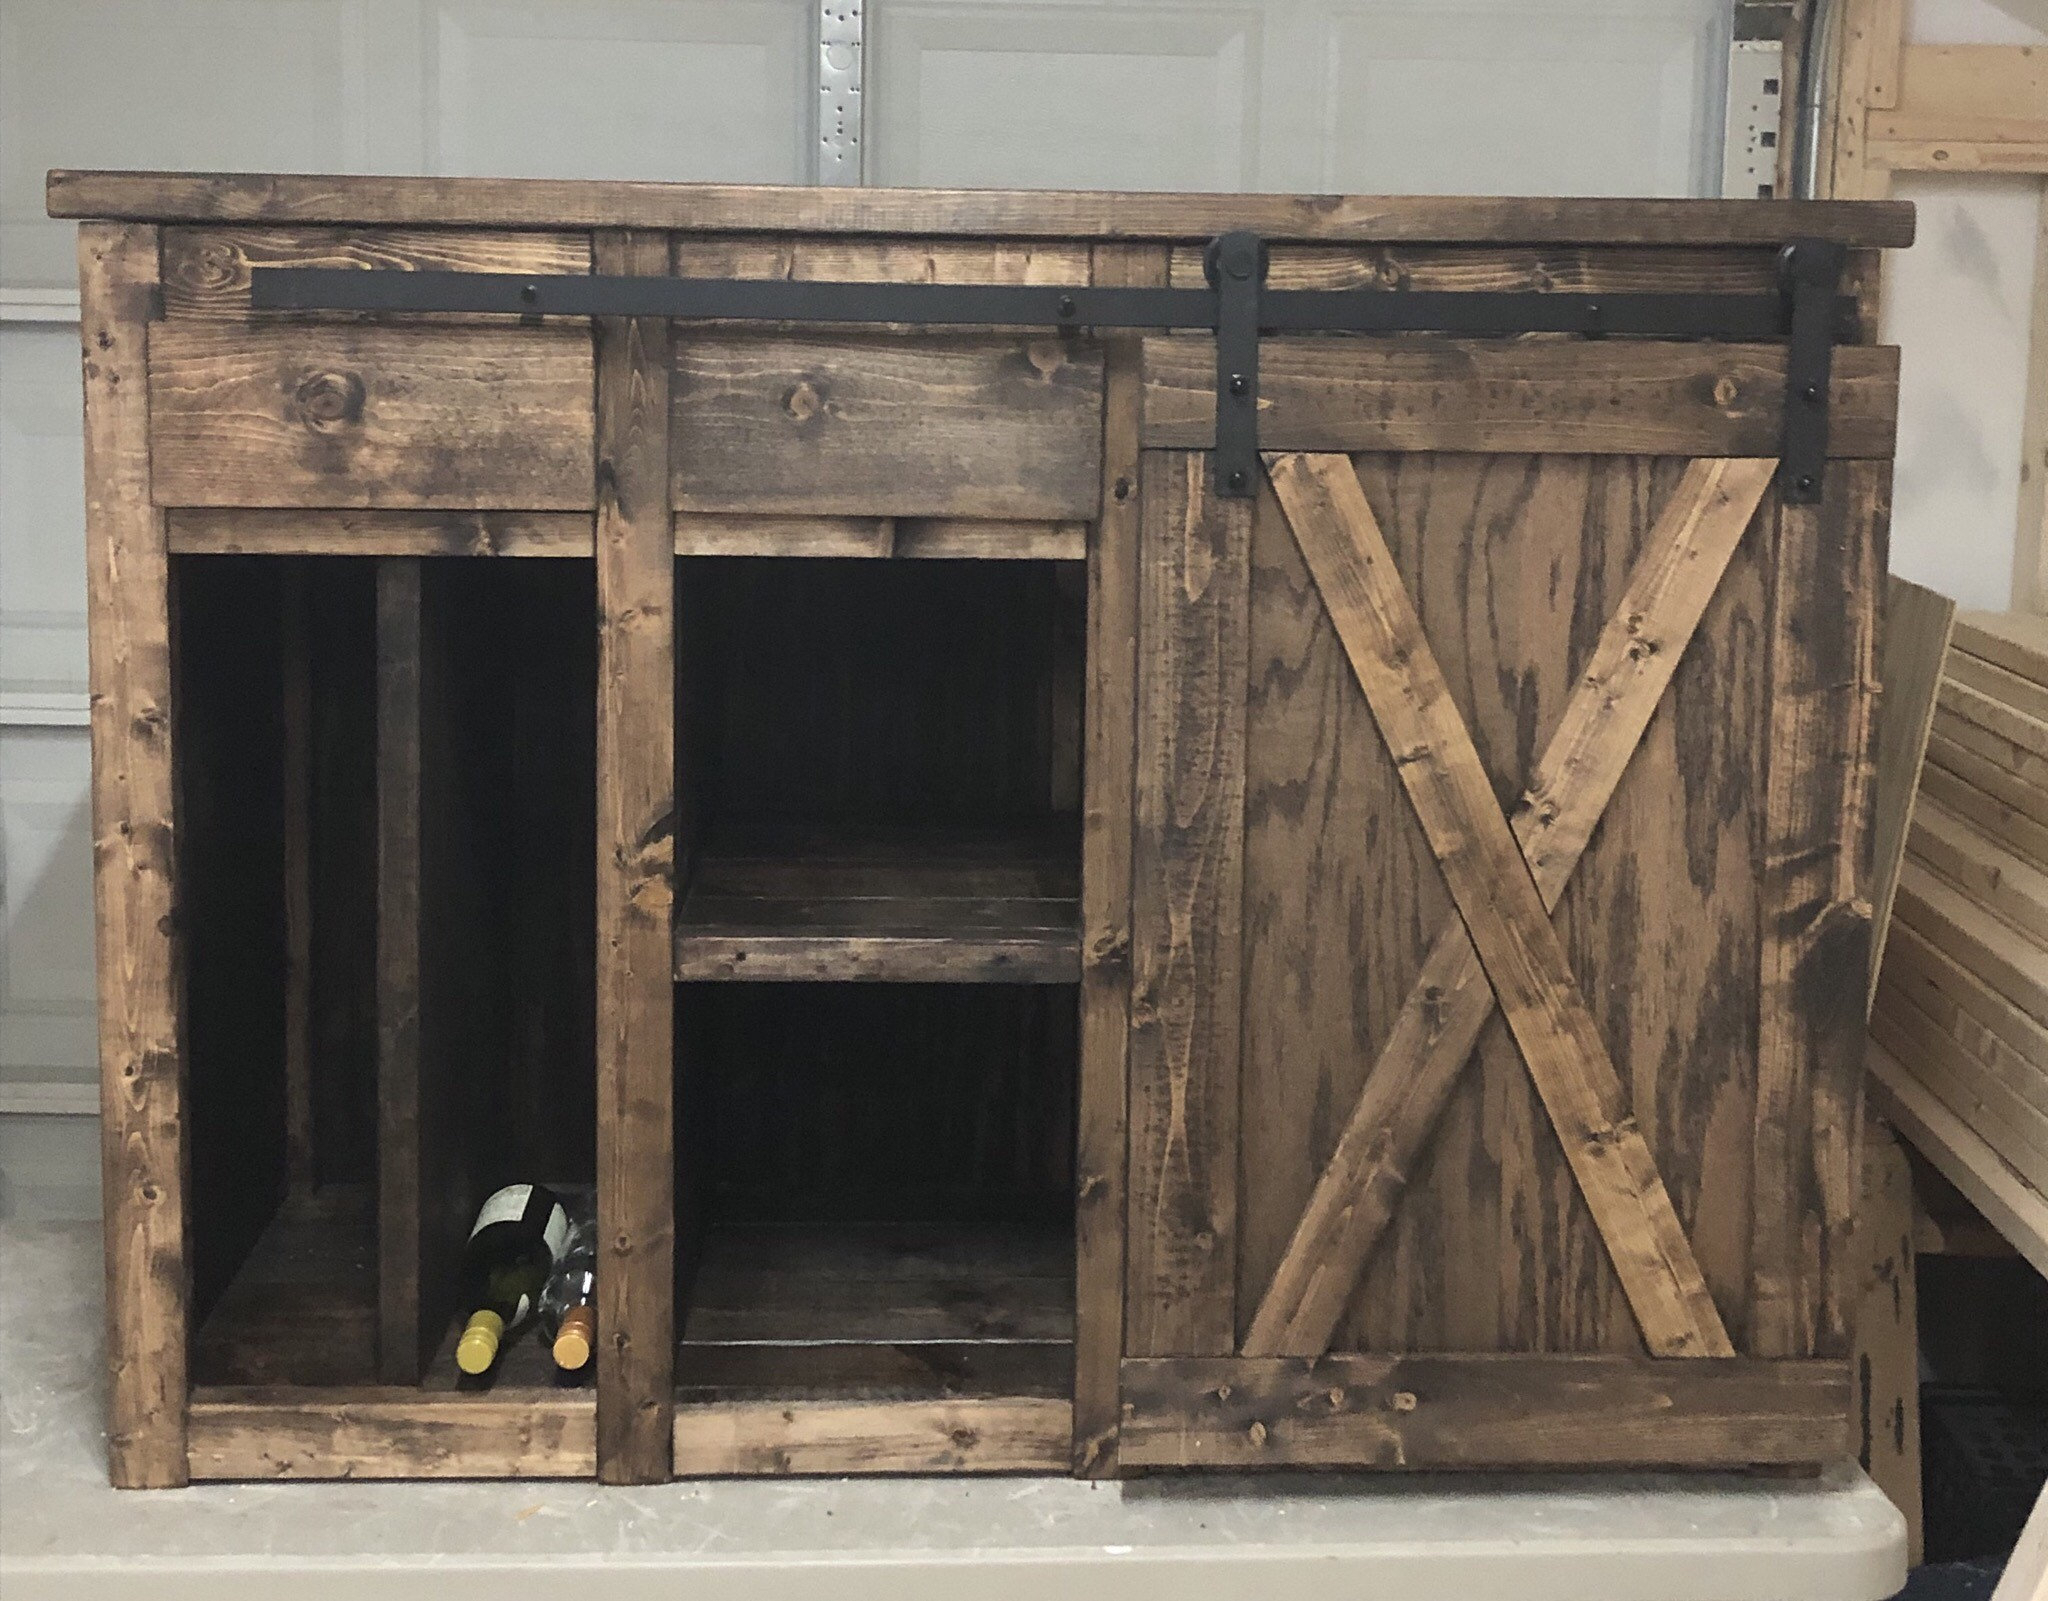 Modern Farmhouse Style Coffee Bar With 1 Barn Doors Slider And Drawer / Sideboard / Wine Bar / Buffet With Drawer / Mini Fridge Cabinet Intended For Contemporary Wine Bar Buffets (View 23 of 30)